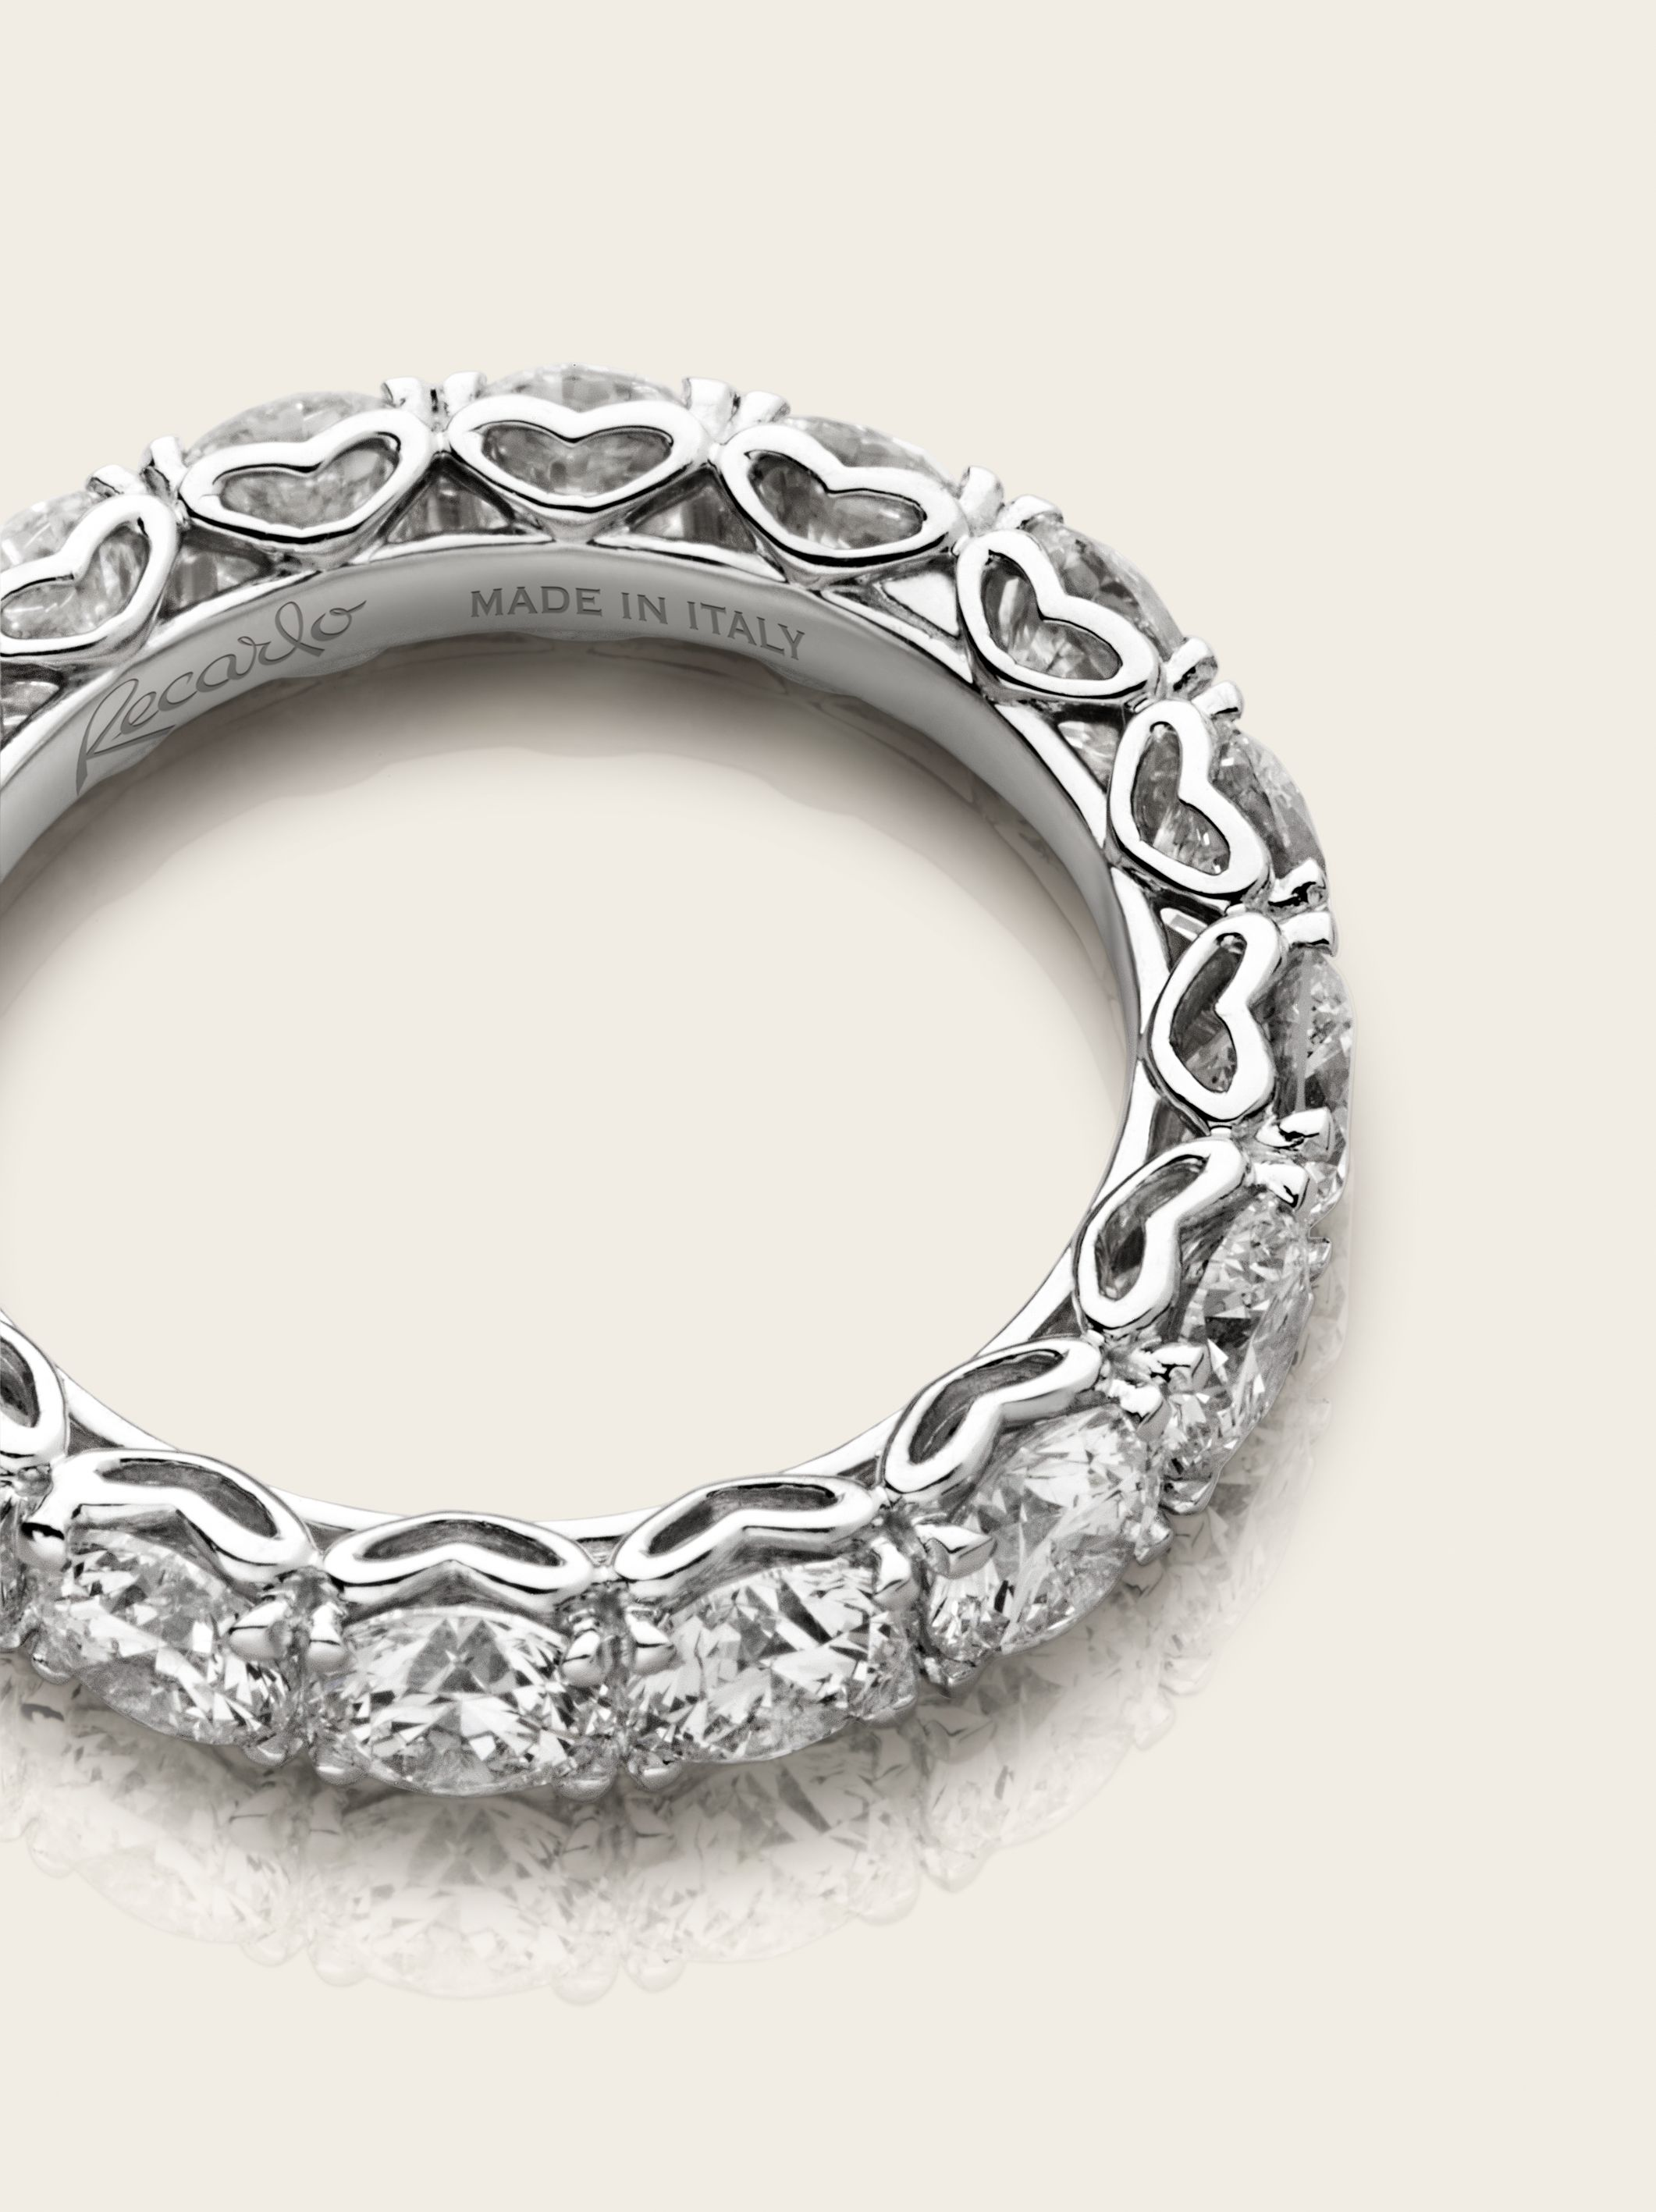 rahaminovdiamonds band tivol bands pin scalloped rings forevermark wide eternity